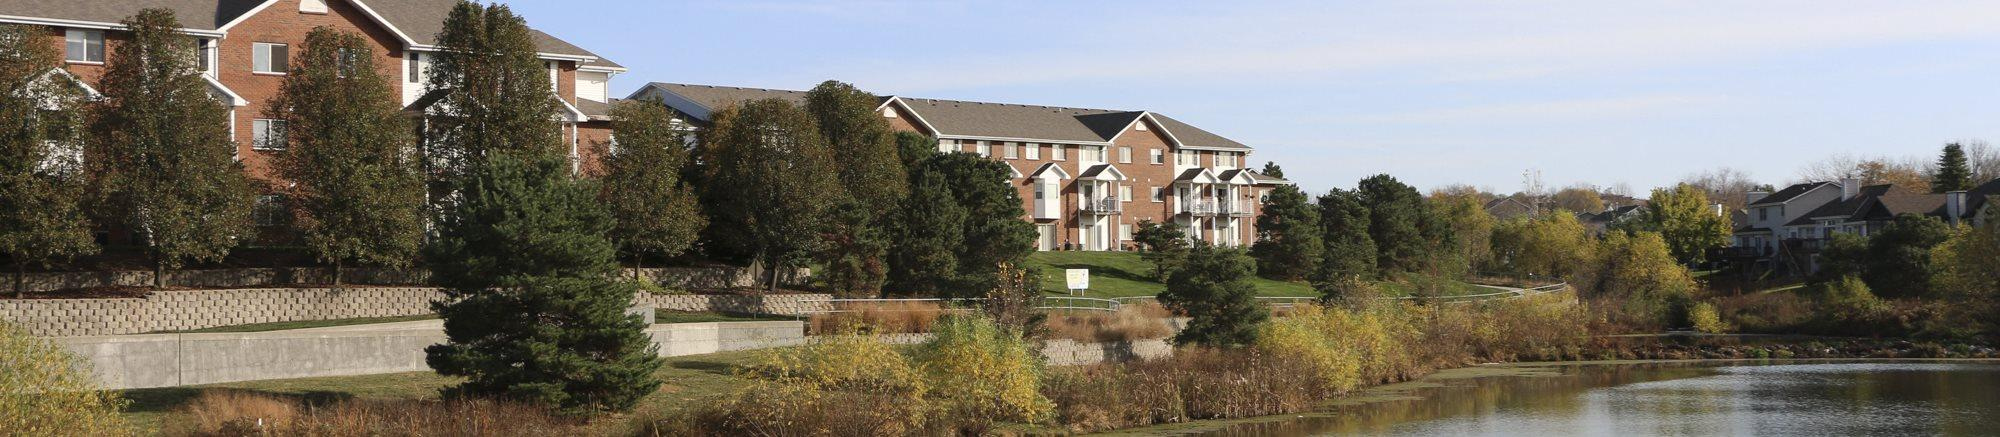 Pine Lake Heights Apartments in South Lincoln NE